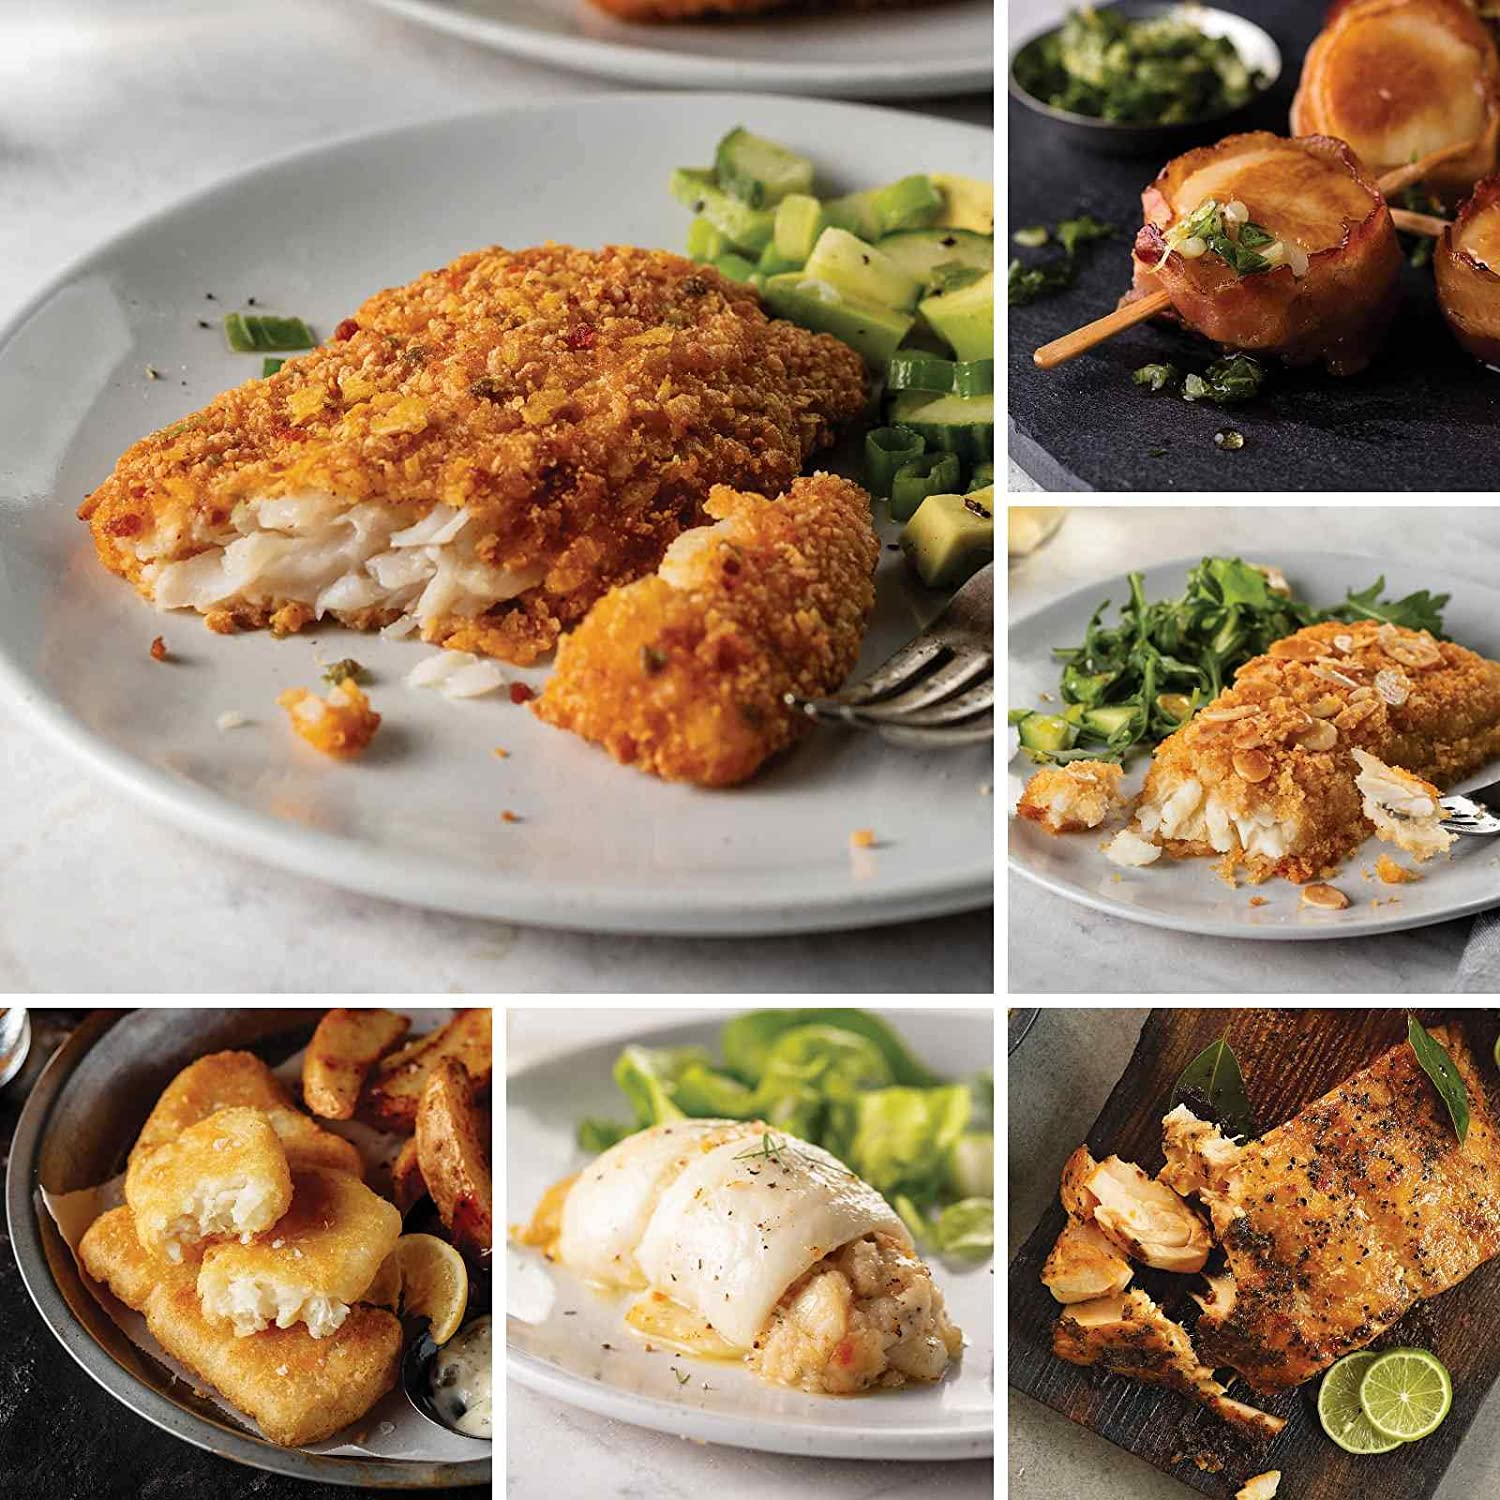 Easy Seafood Favorites from Omaha Steaks (Tortilla-Crusted Tilapia Fillets, Pub-Style Cod, Stuffed Sole with Scallops and Crabmeat, Marinated Salmon Fillets, Sole Almondine, and more)